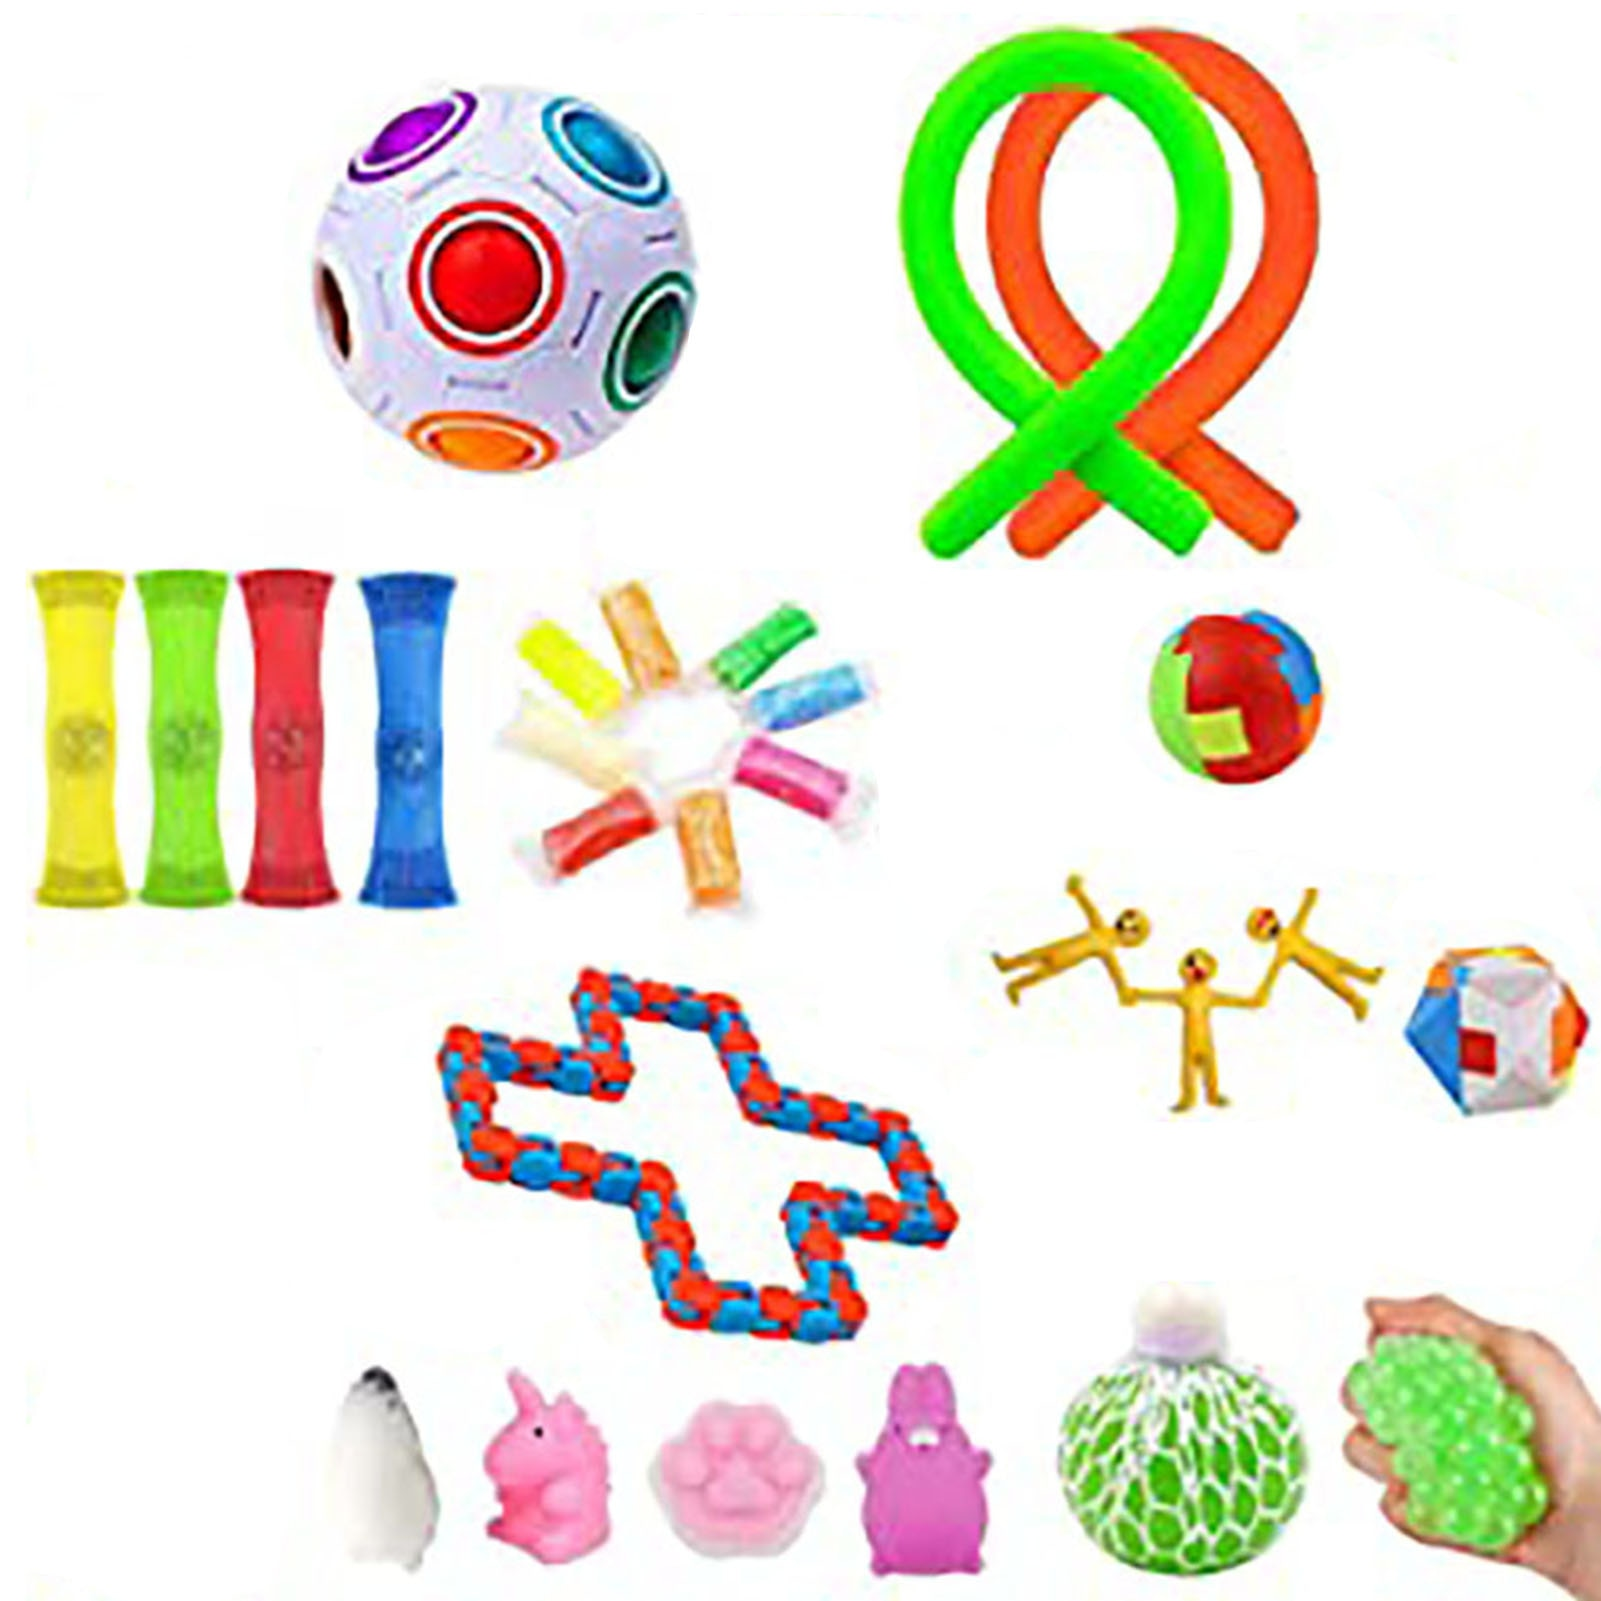 37 IN 1 Fidget Toys Pack Antistress Decompression Pop Toy Premium Simple Dimple Hand Stress Relief It Toy For Kids Adults Gift enlarge